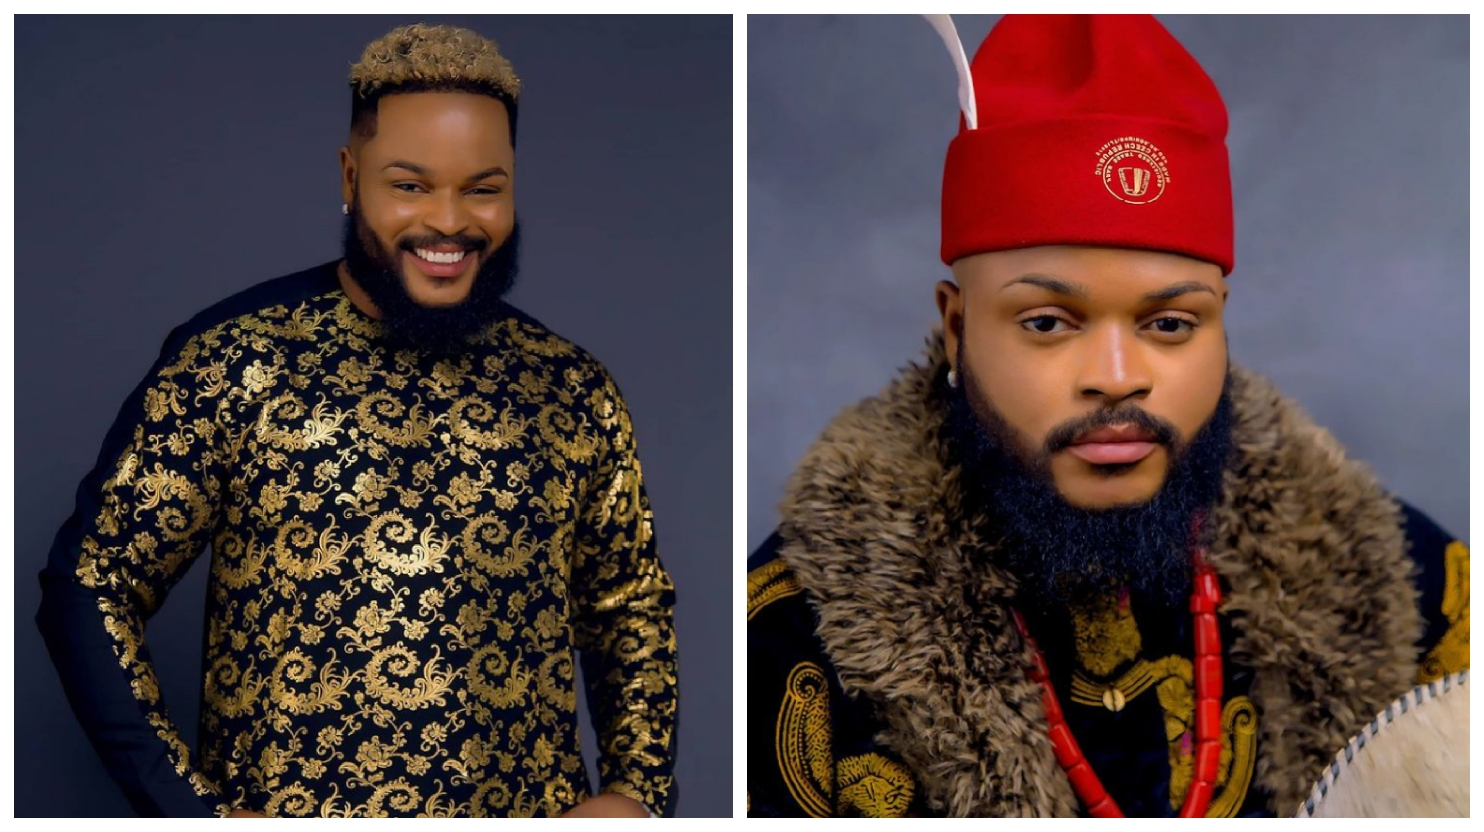 """BBNaija: """"I want to appear like a king on Sunday"""" - Whitemoney says as he begs Big Brother to get him a royal outfit designed with gold"""